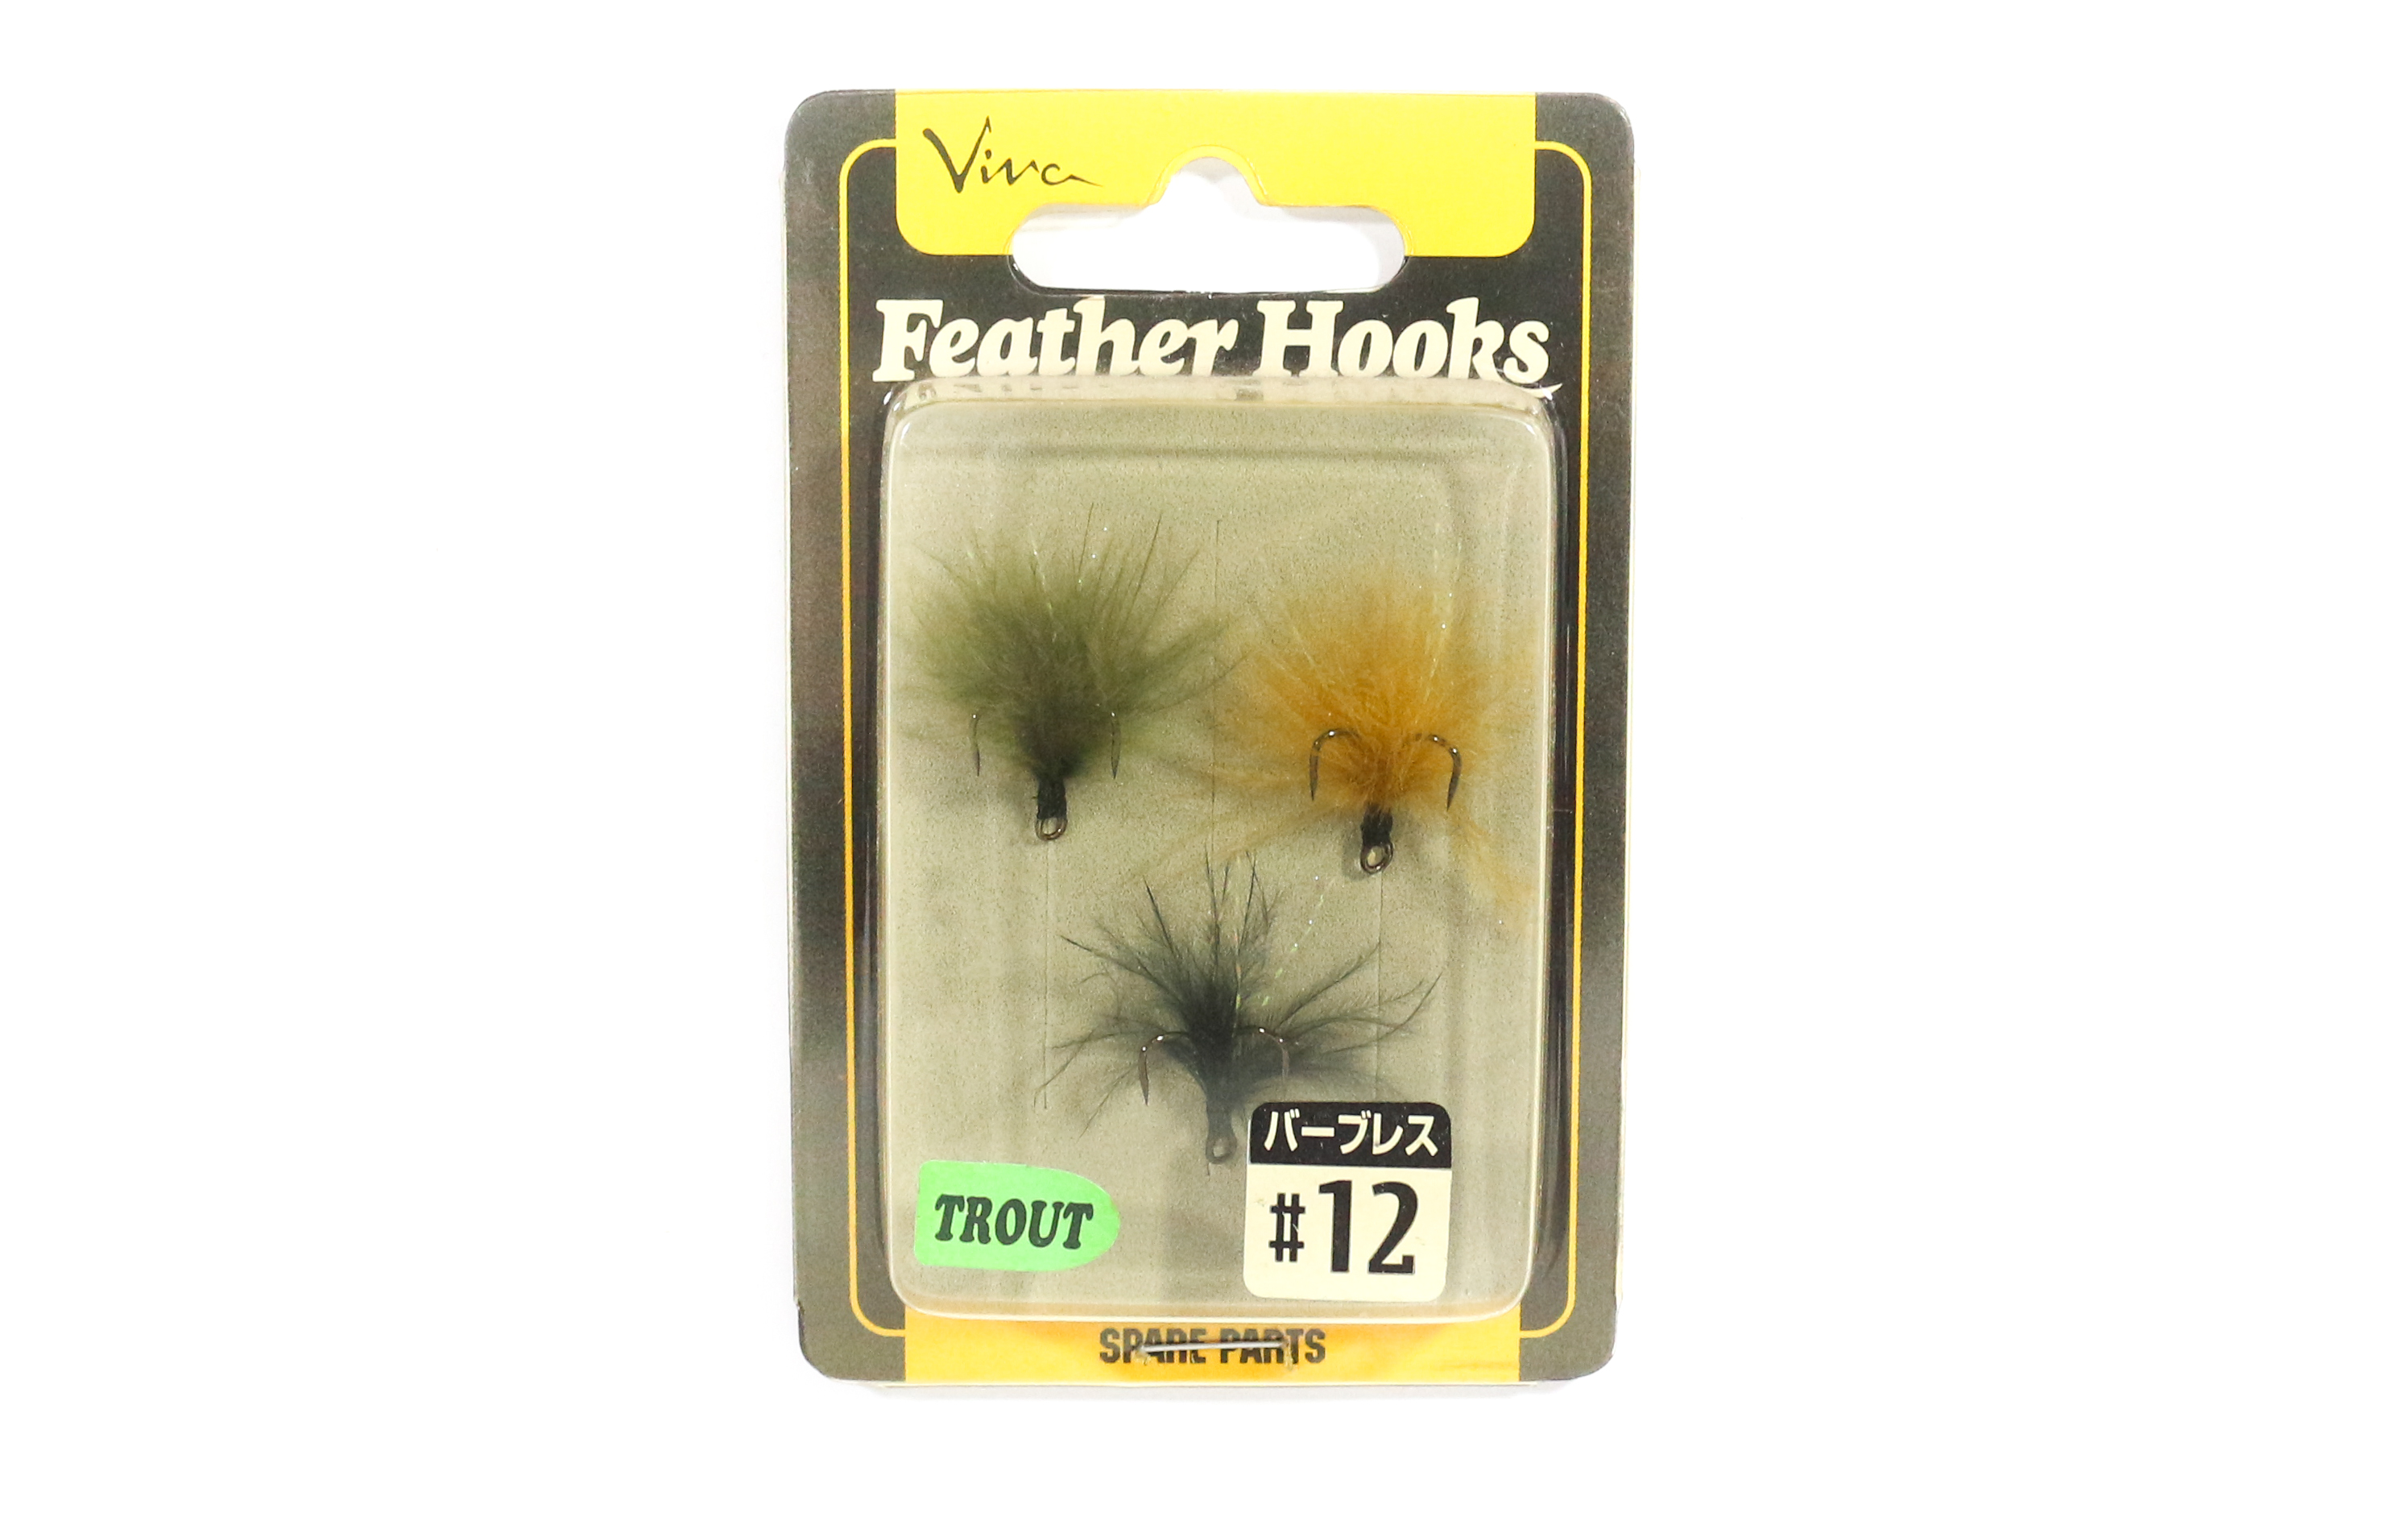 Viva Feather Spare Buck Tail Hooks for Trout Size 12 FH2 (4706)